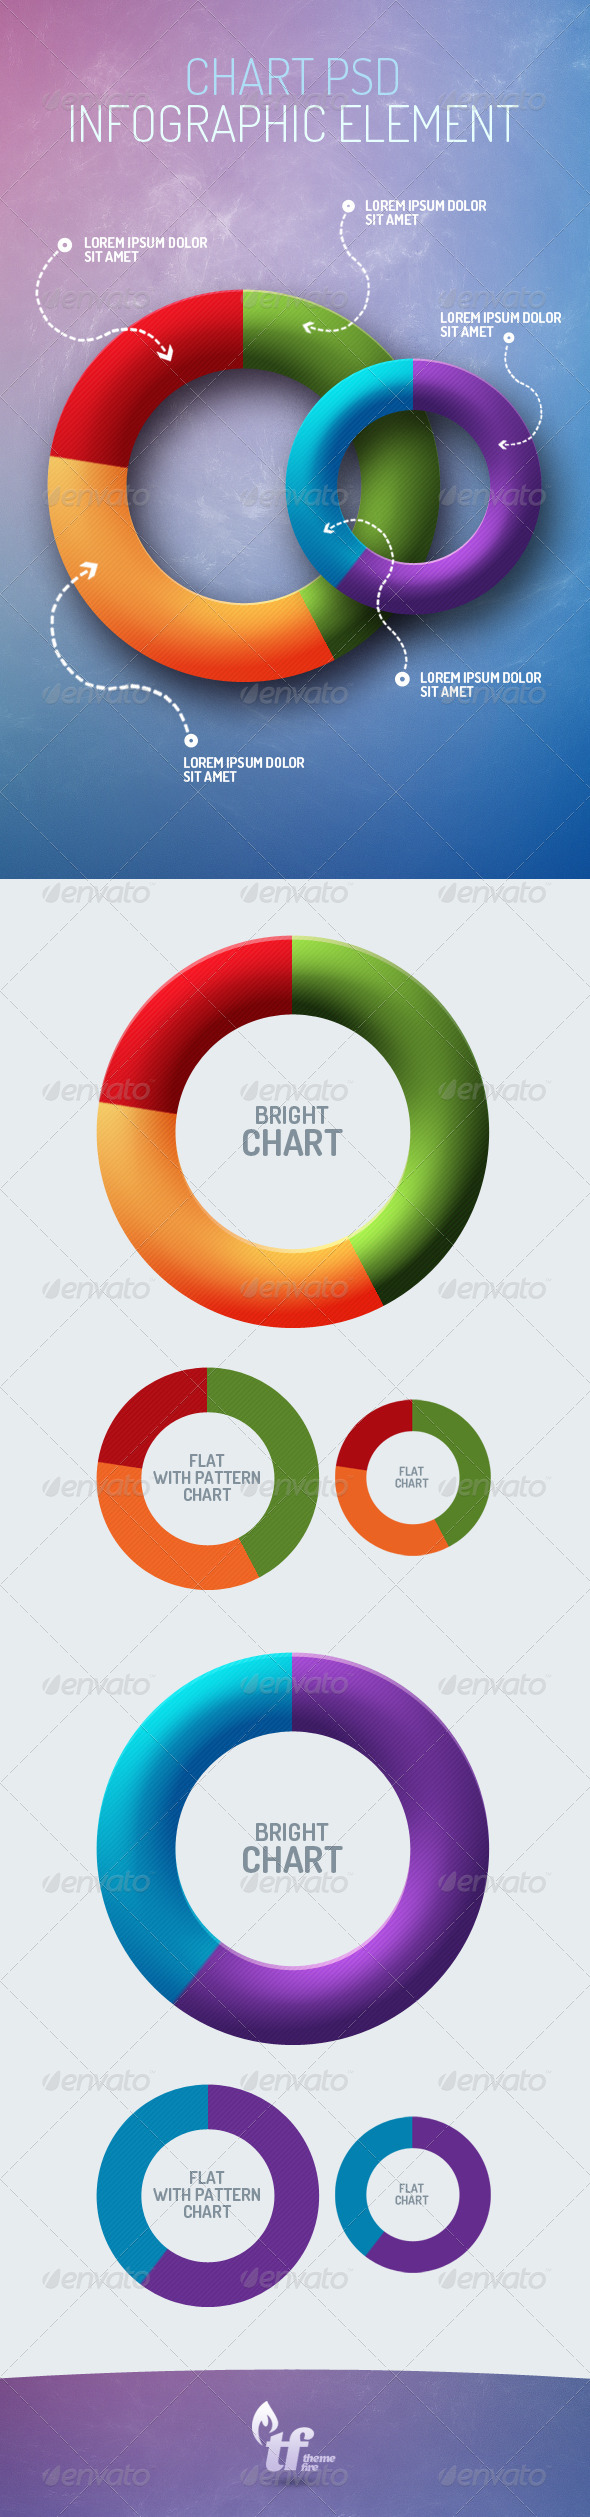 Pie Chart Infographic Element PSD - Infographics